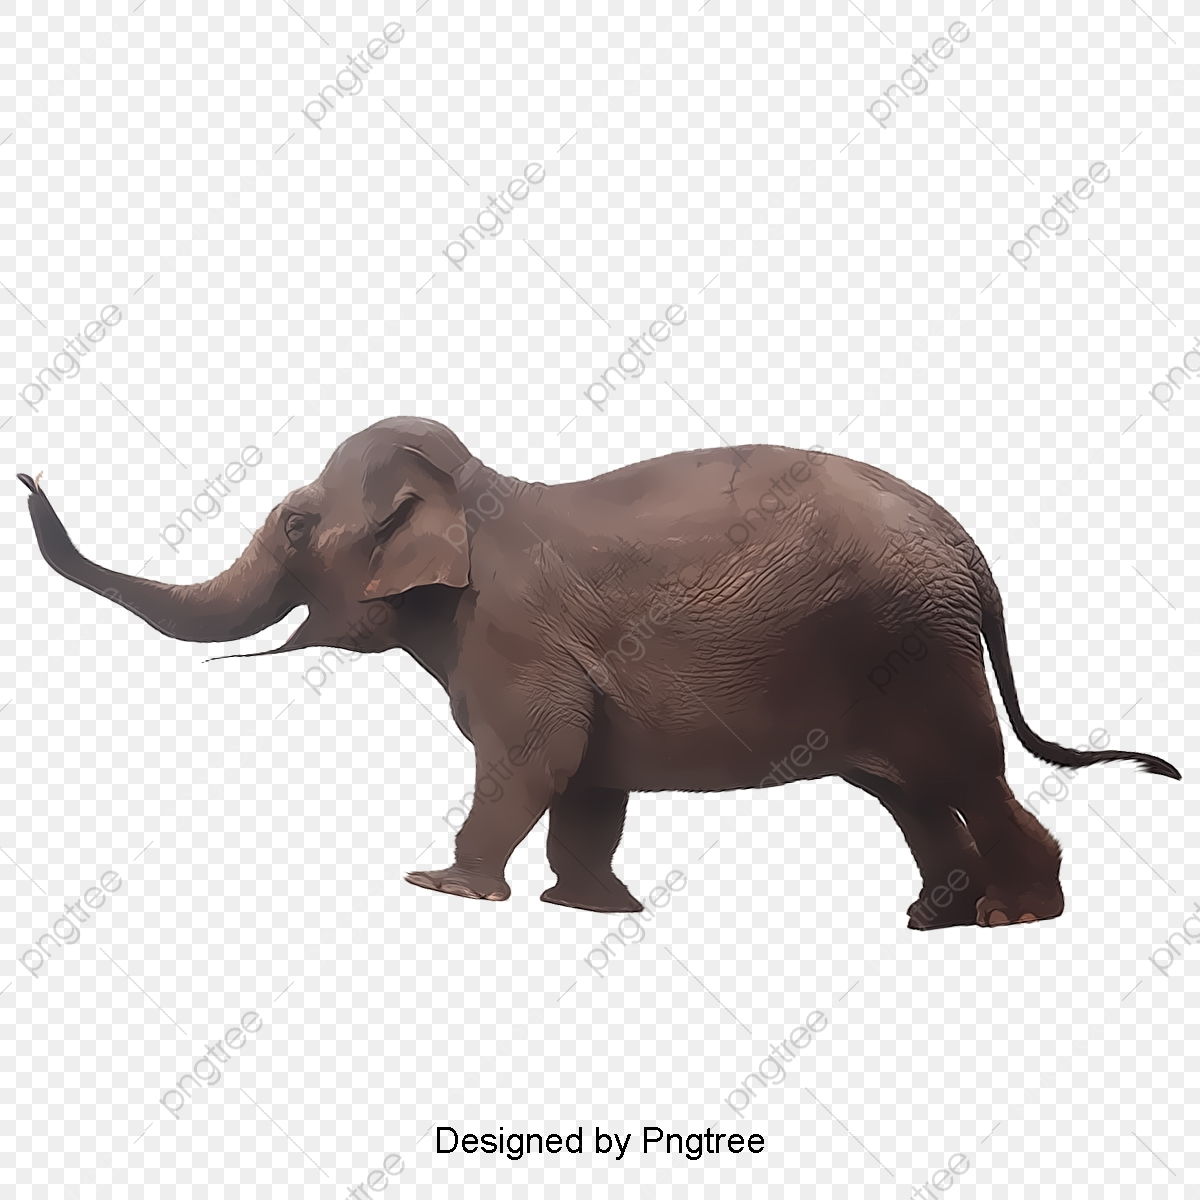 Elephant Png Transparent Clipart Image And Psd File For Free Download You can download 1279*1413 of elephant background now. https pngtree com freepng elephant 2225988 html